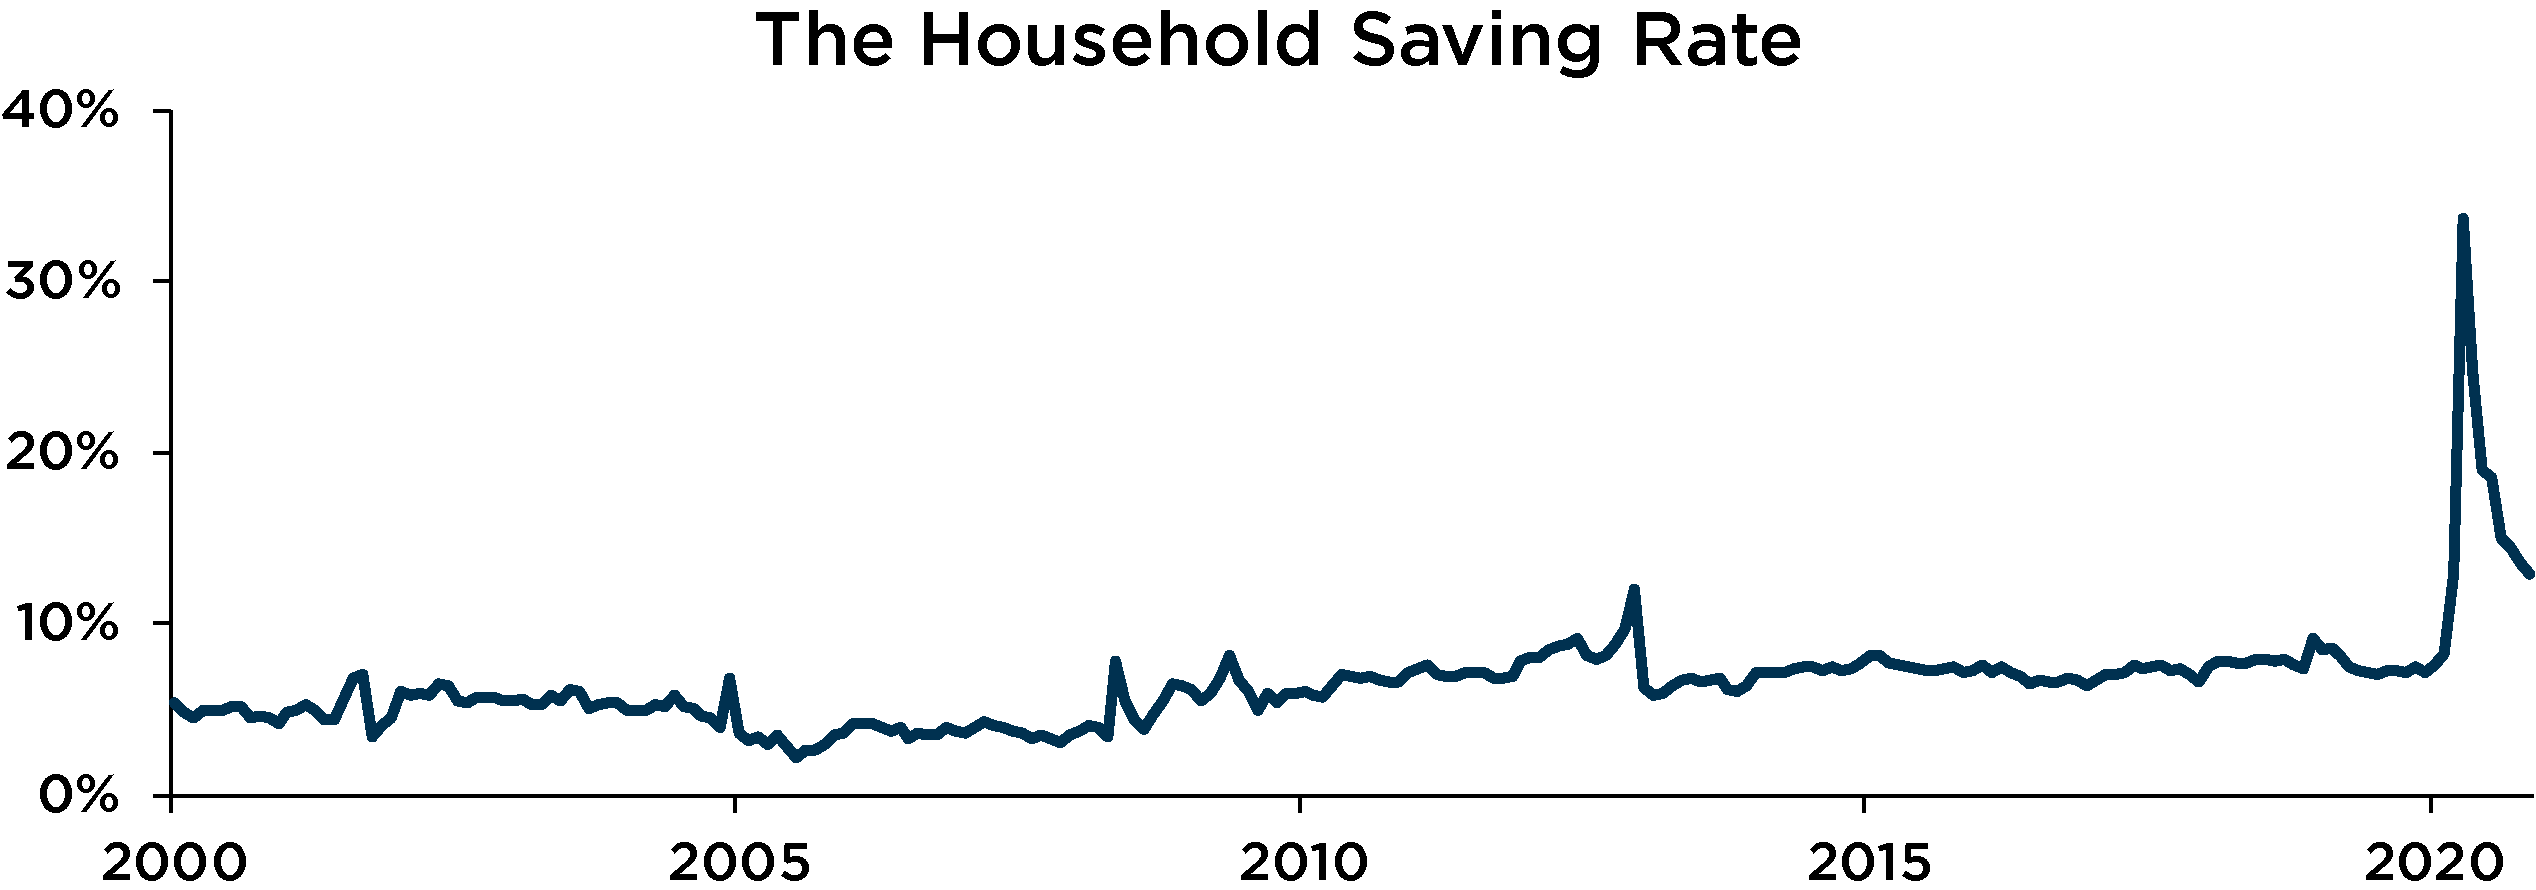 graph depicting the household saving rate